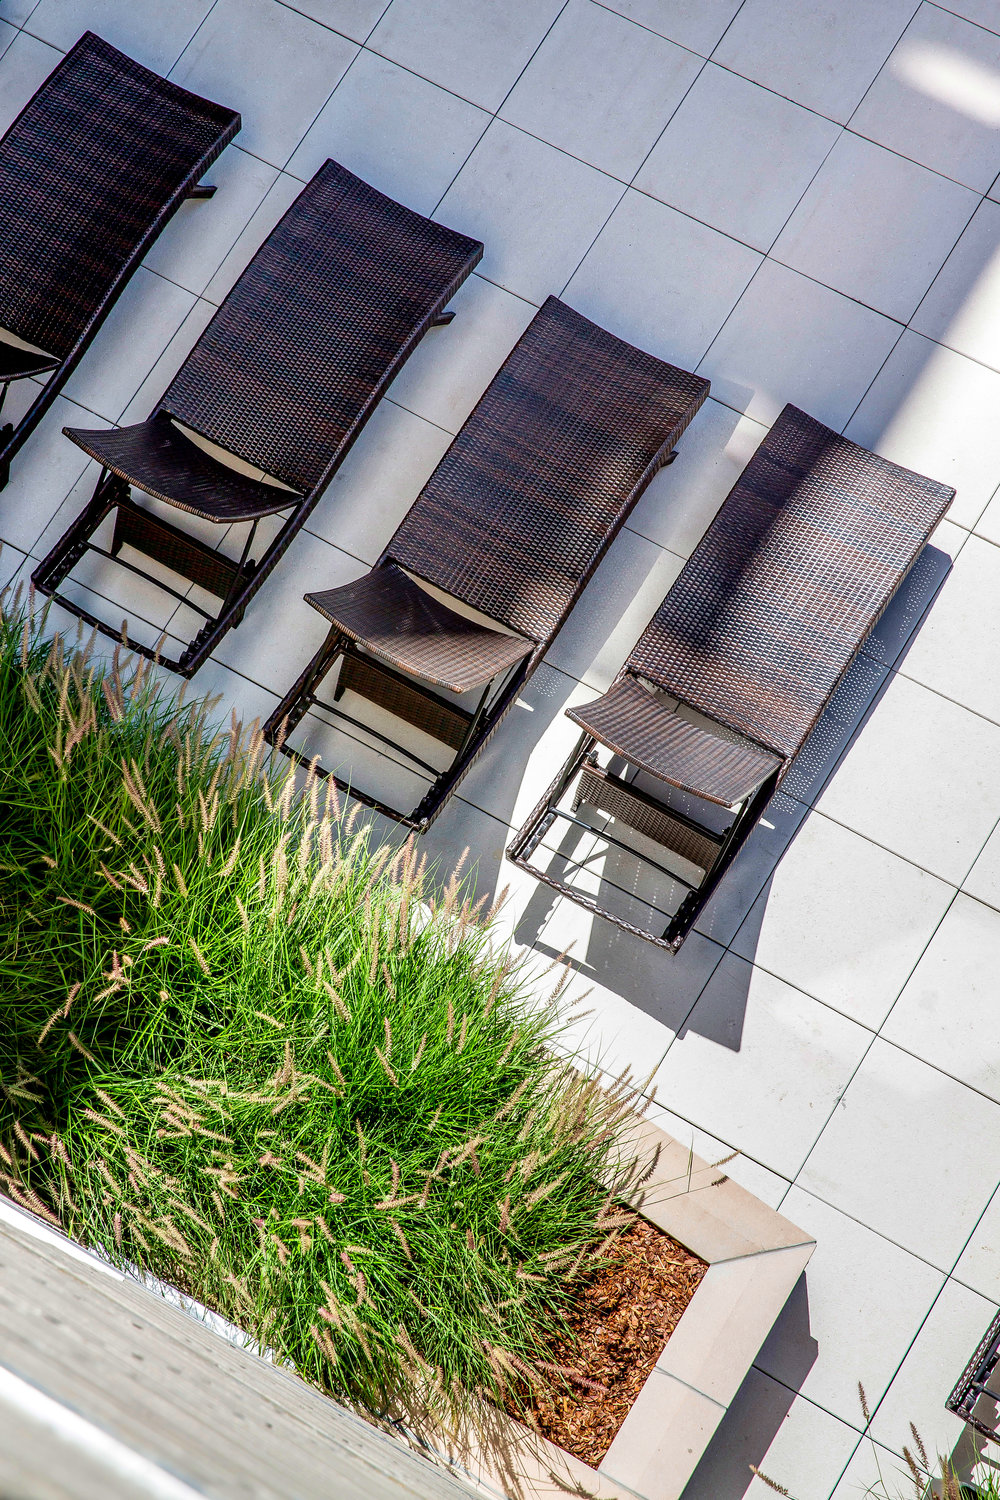 "<img src="" studioINSITE_The_Verve_Courtyard "" alt=""Urban Living, Multifamily Courtyard, Amenity Deck, Fire Pit, Grill Area, Shade Structure, Outdoor Garden,  Landscape Architecture, Luxury Living, the Douglas, Denver, CO, Colorado Courtyards, Amenity Spaces, Great Courtyard Designs"" title=""The Verve""/>"